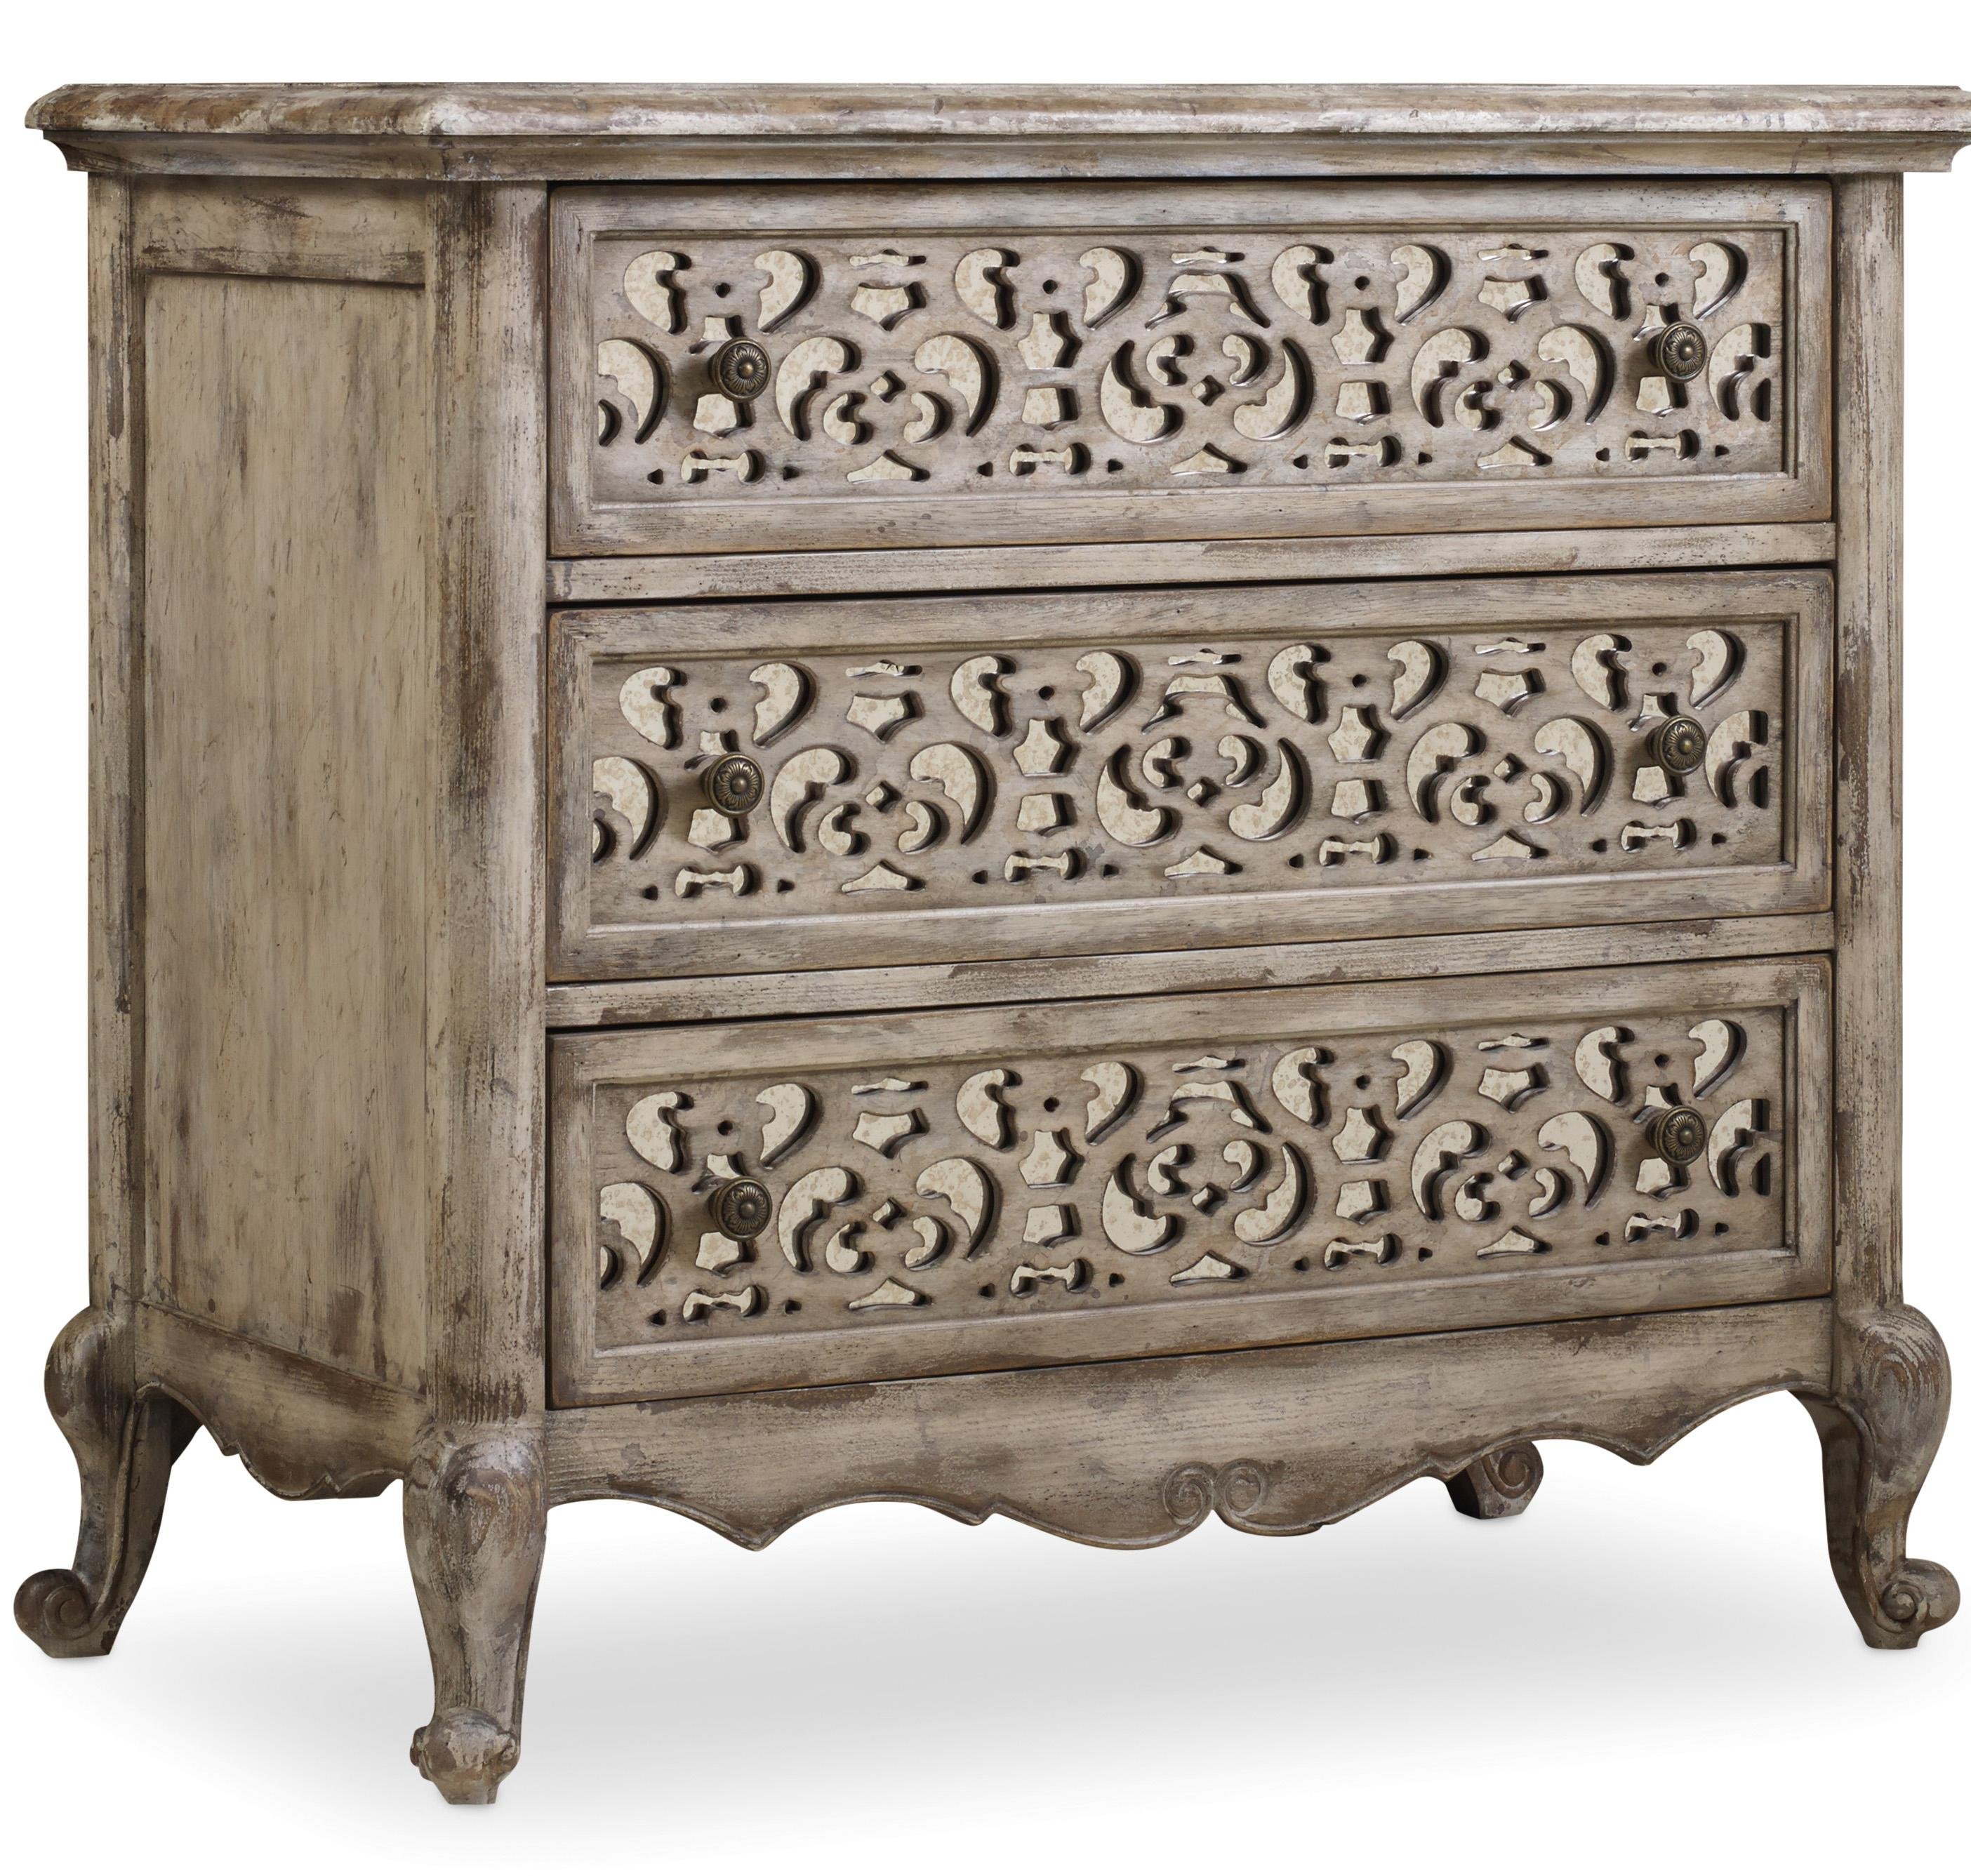 Fretwork Nightstand